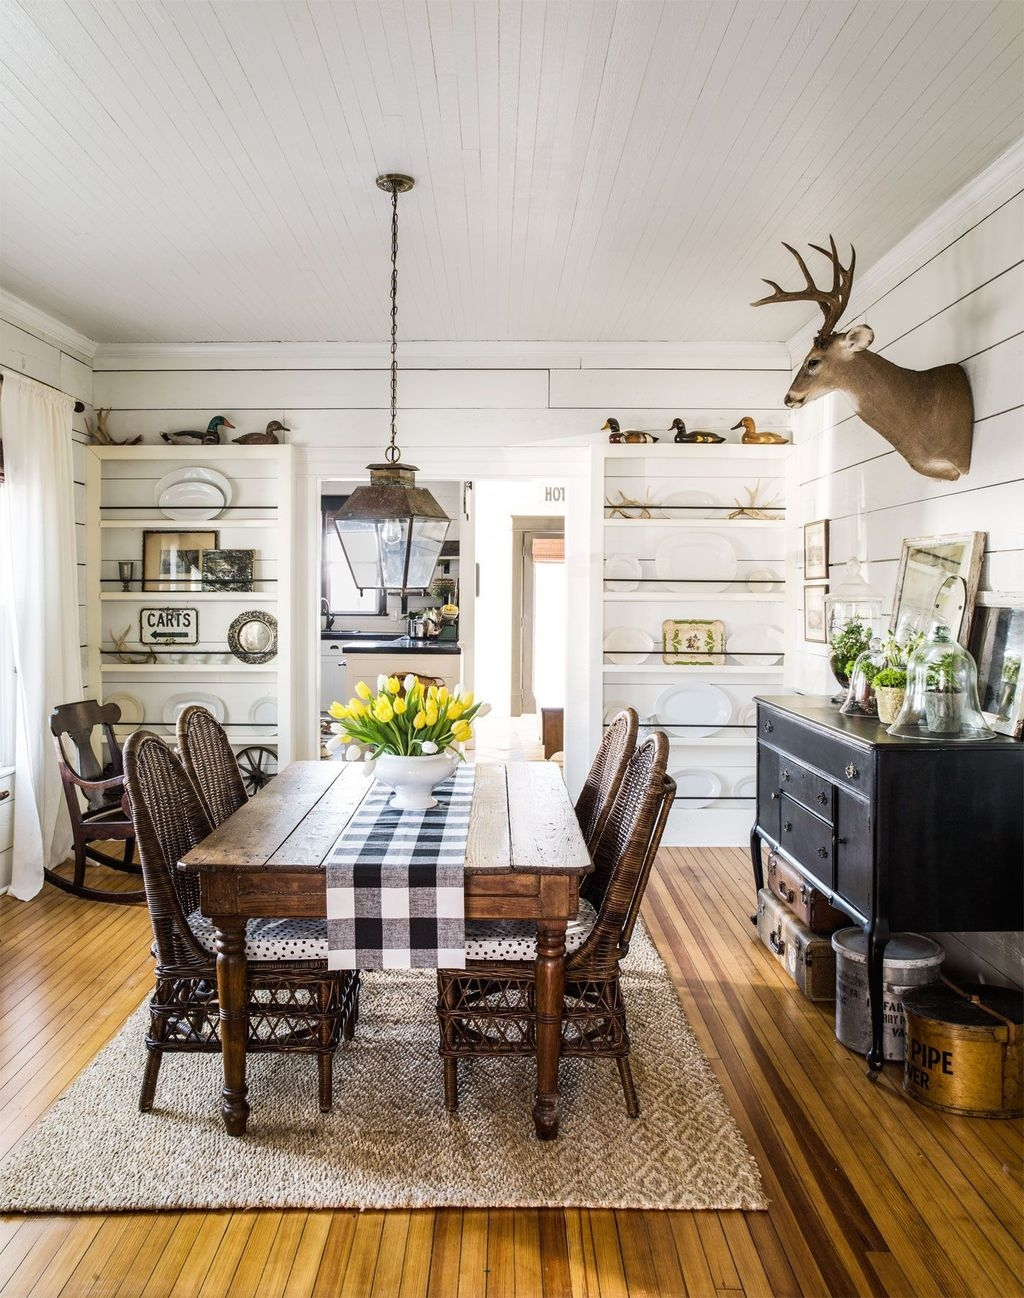 Popular Farmhouse Dining Room Design Ideas Trend 2019 46